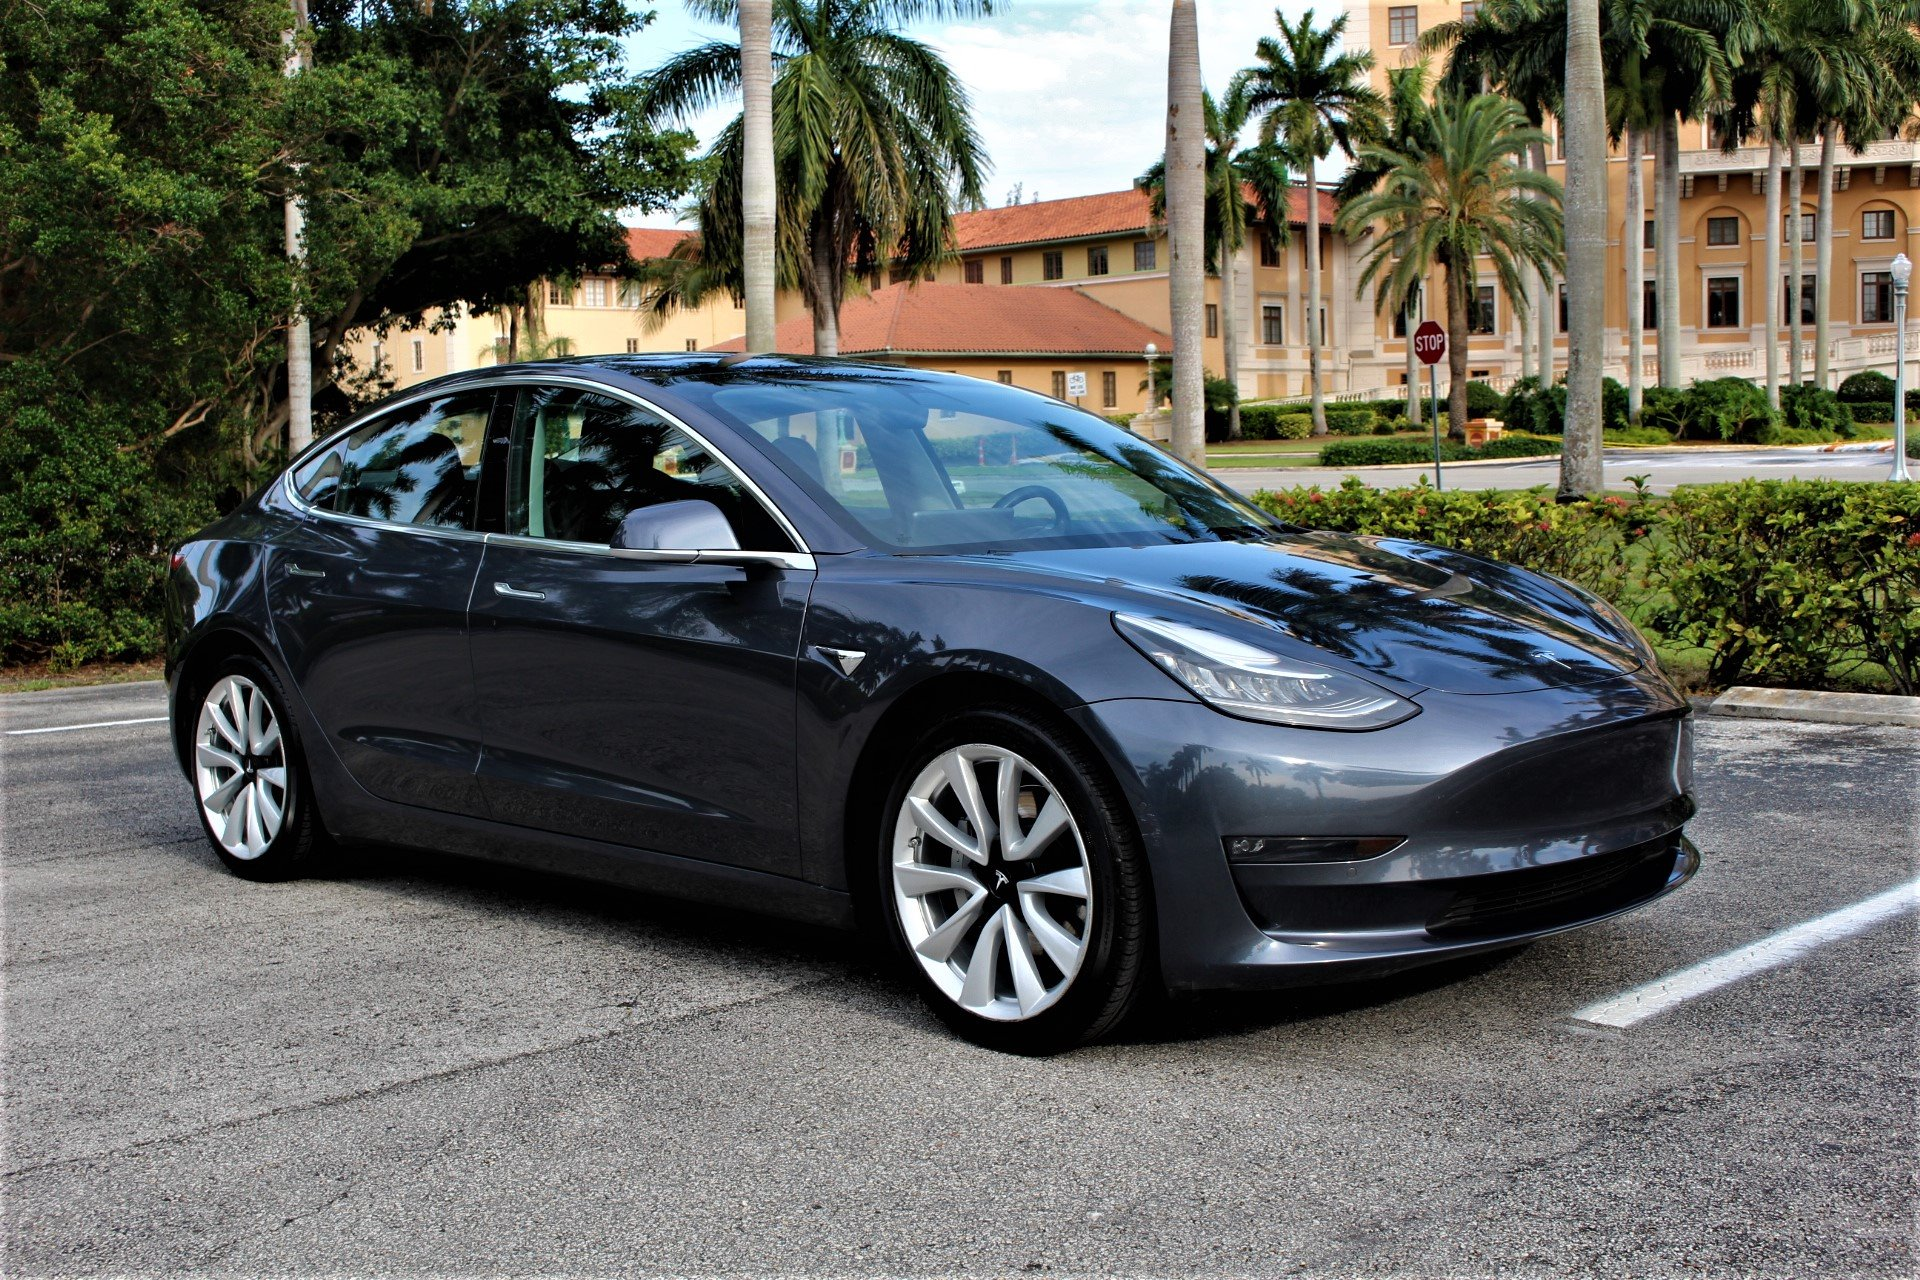 Used 2018 Tesla Model 3 Long Range for sale $37,850 at The Gables Sports Cars in Miami FL 33146 4